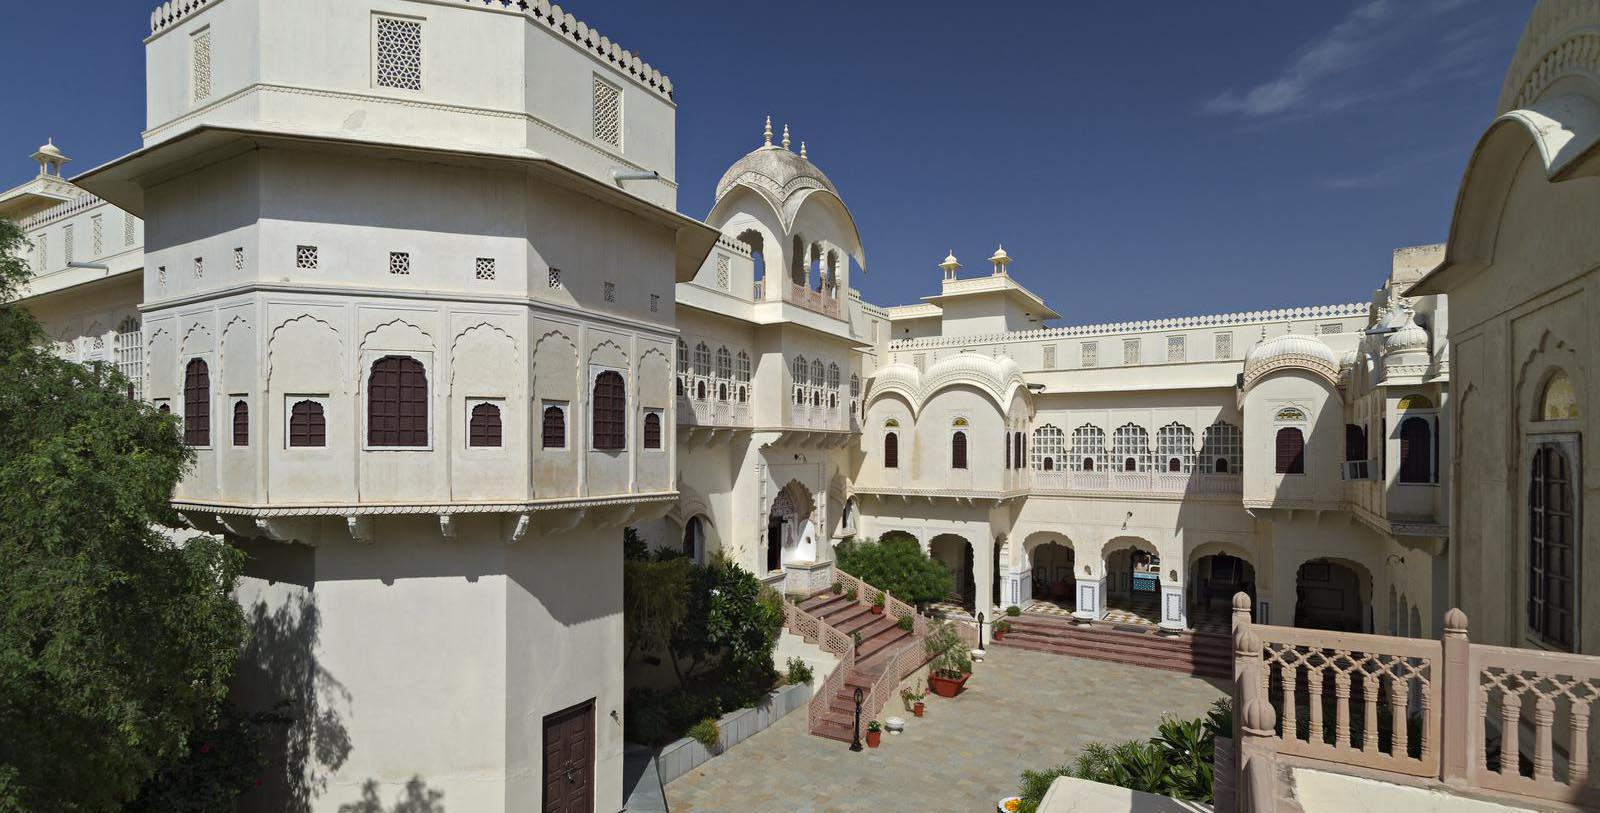 Image of hotel exterior Alsisar Mahal, 1800s, Member of Historic Hotels Worldwide, in Jhunjhunu, India, Special Offers, Discounted Rates, Families, Romantic Escape, Honeymoons, Anniversaries, Reunions